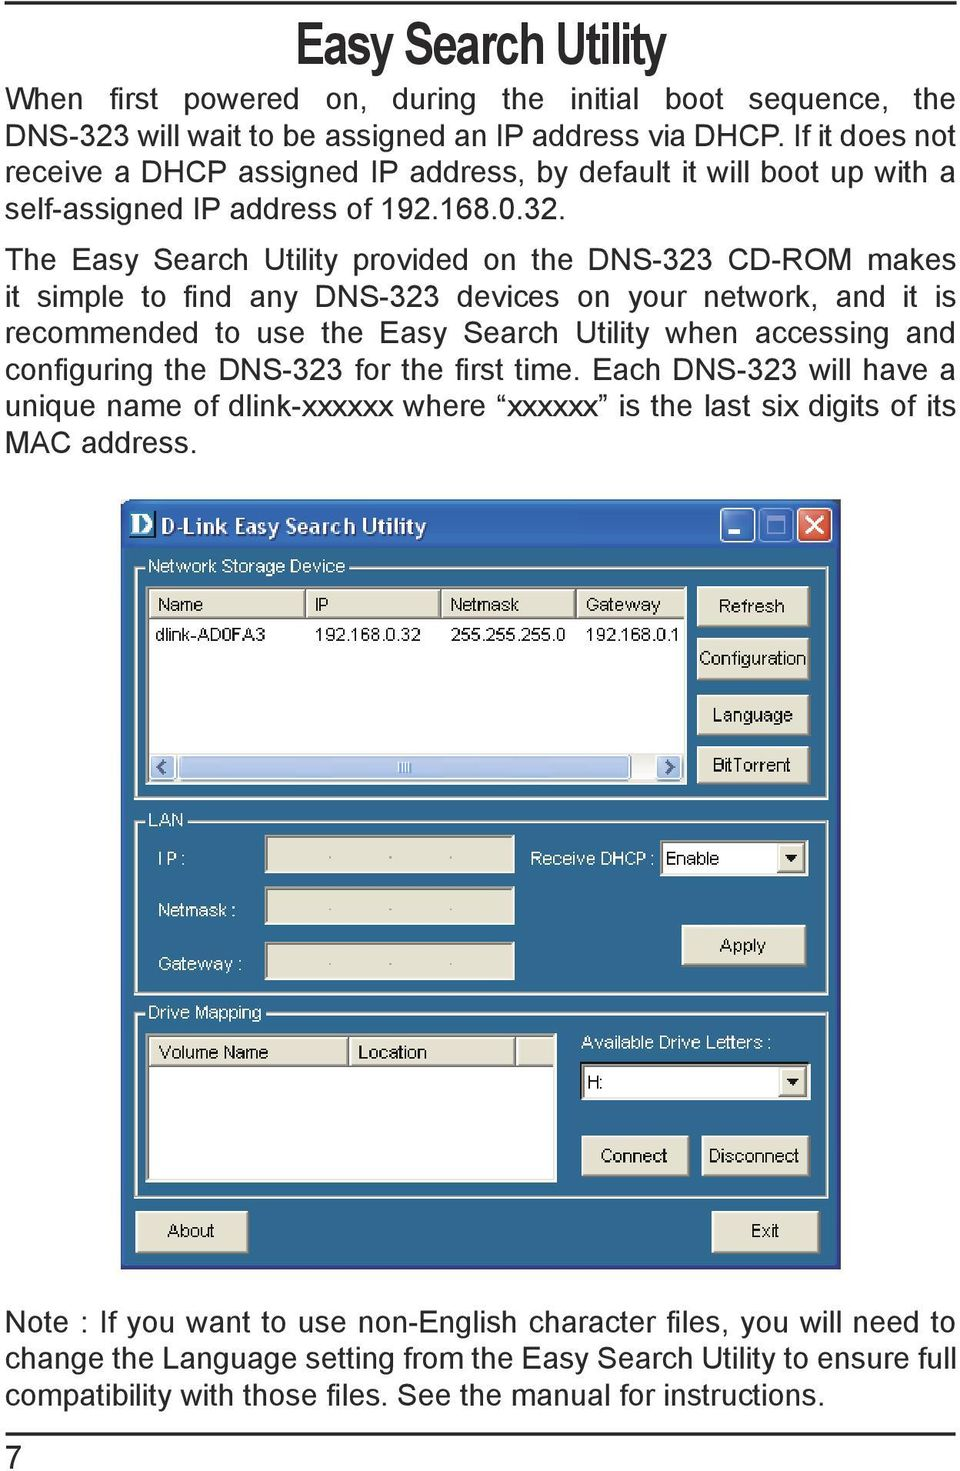 The Easy Search Utility provided on the DNS-323 CD-ROM makes it simple to find any DNS-323 devices on your network, and it is recommended to use the Easy Search Utility when accessing and configuring